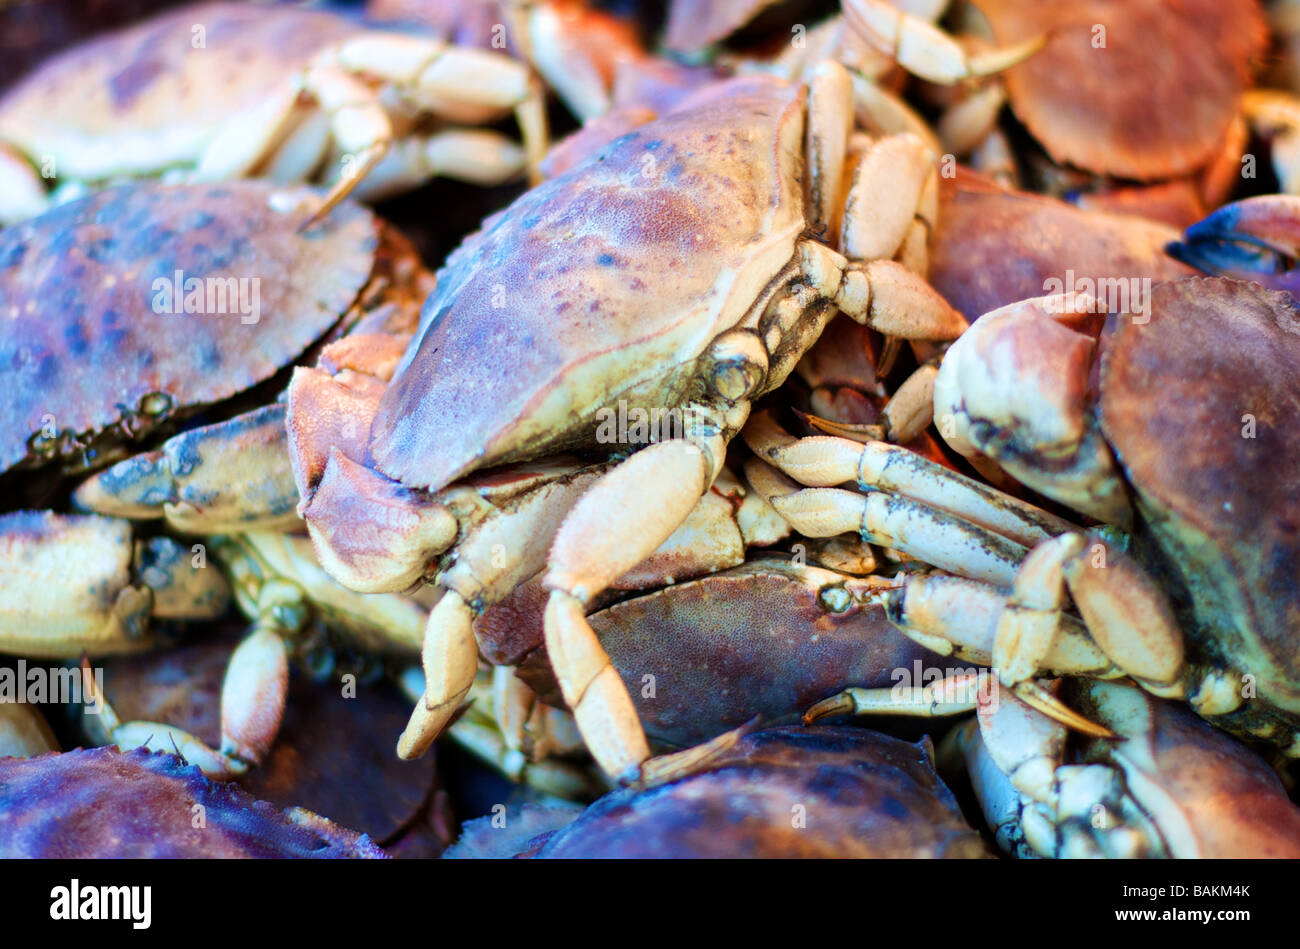 Colorful Close-up Photo of Live Crabs on Display at a Seafood Market - Stock Image